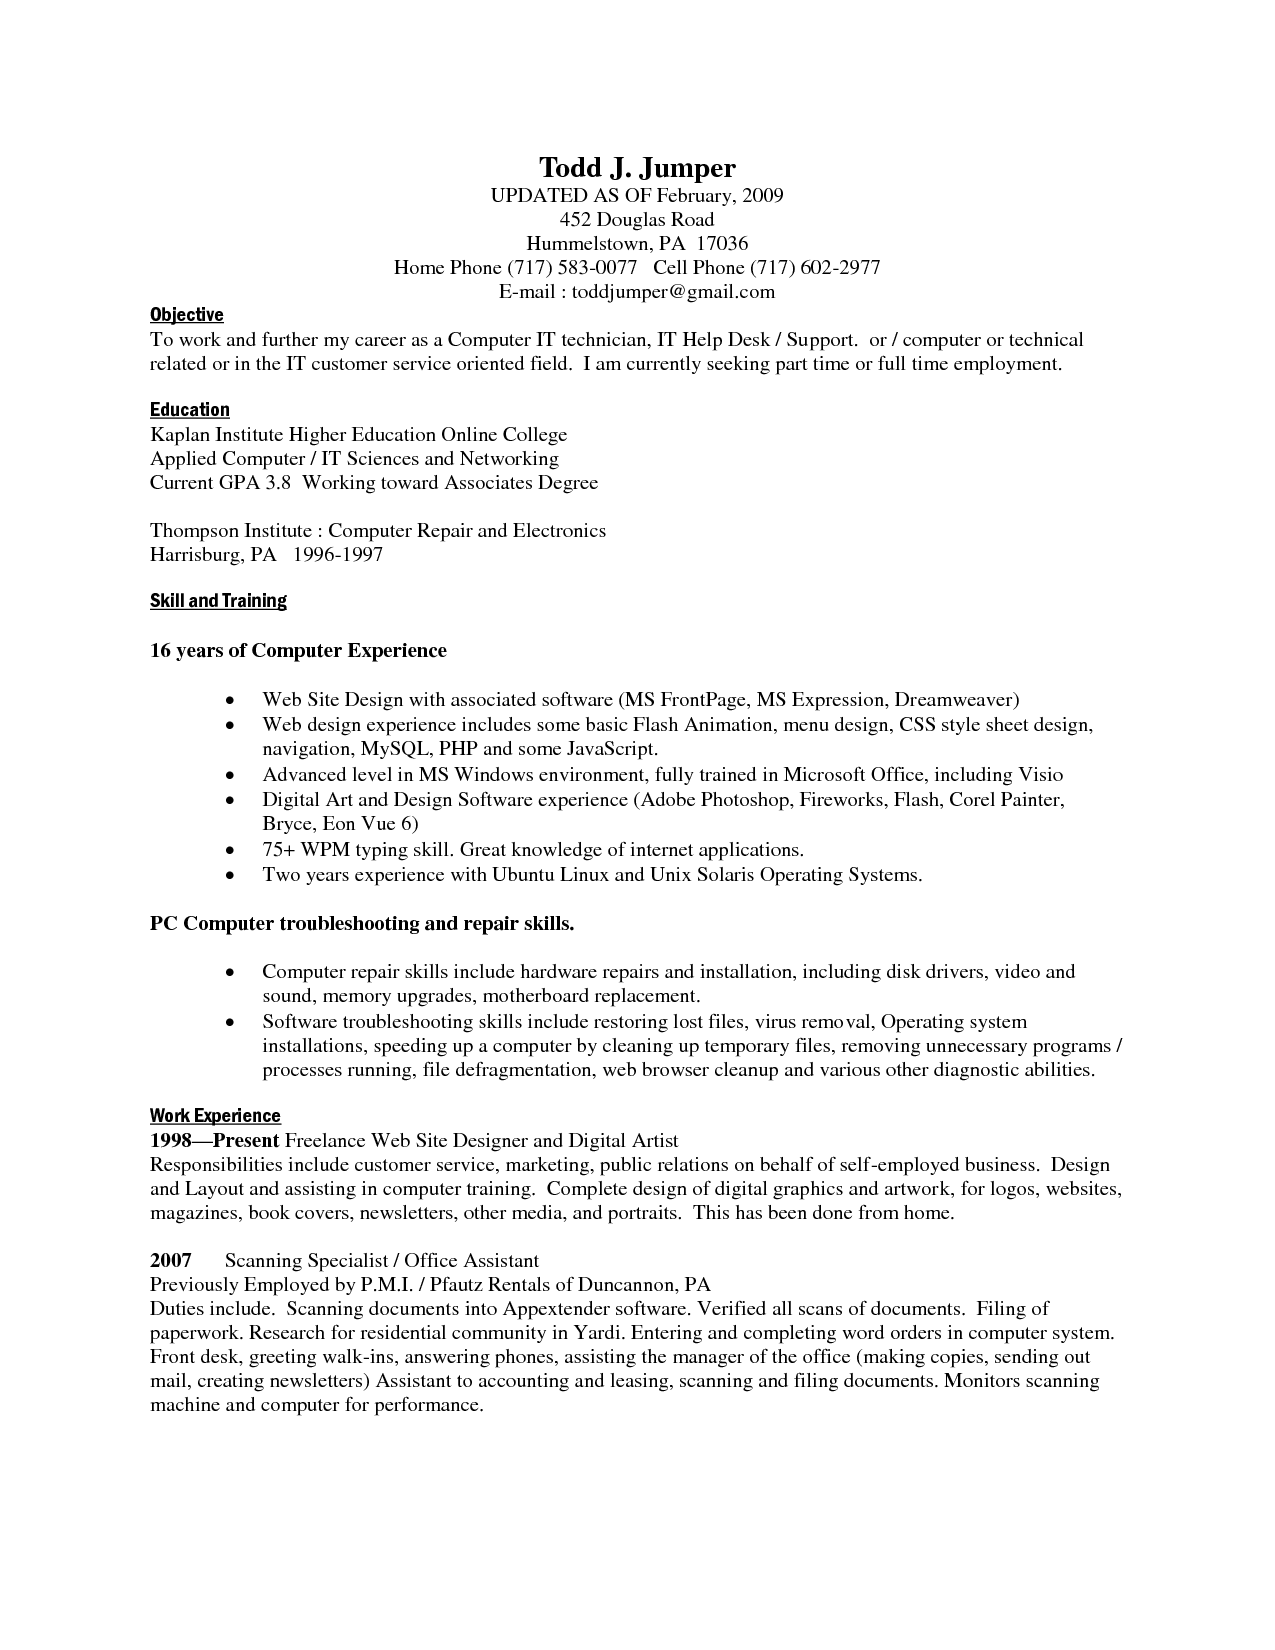 Fast Food Resume Skills For Fastfood Cashier Functional Based